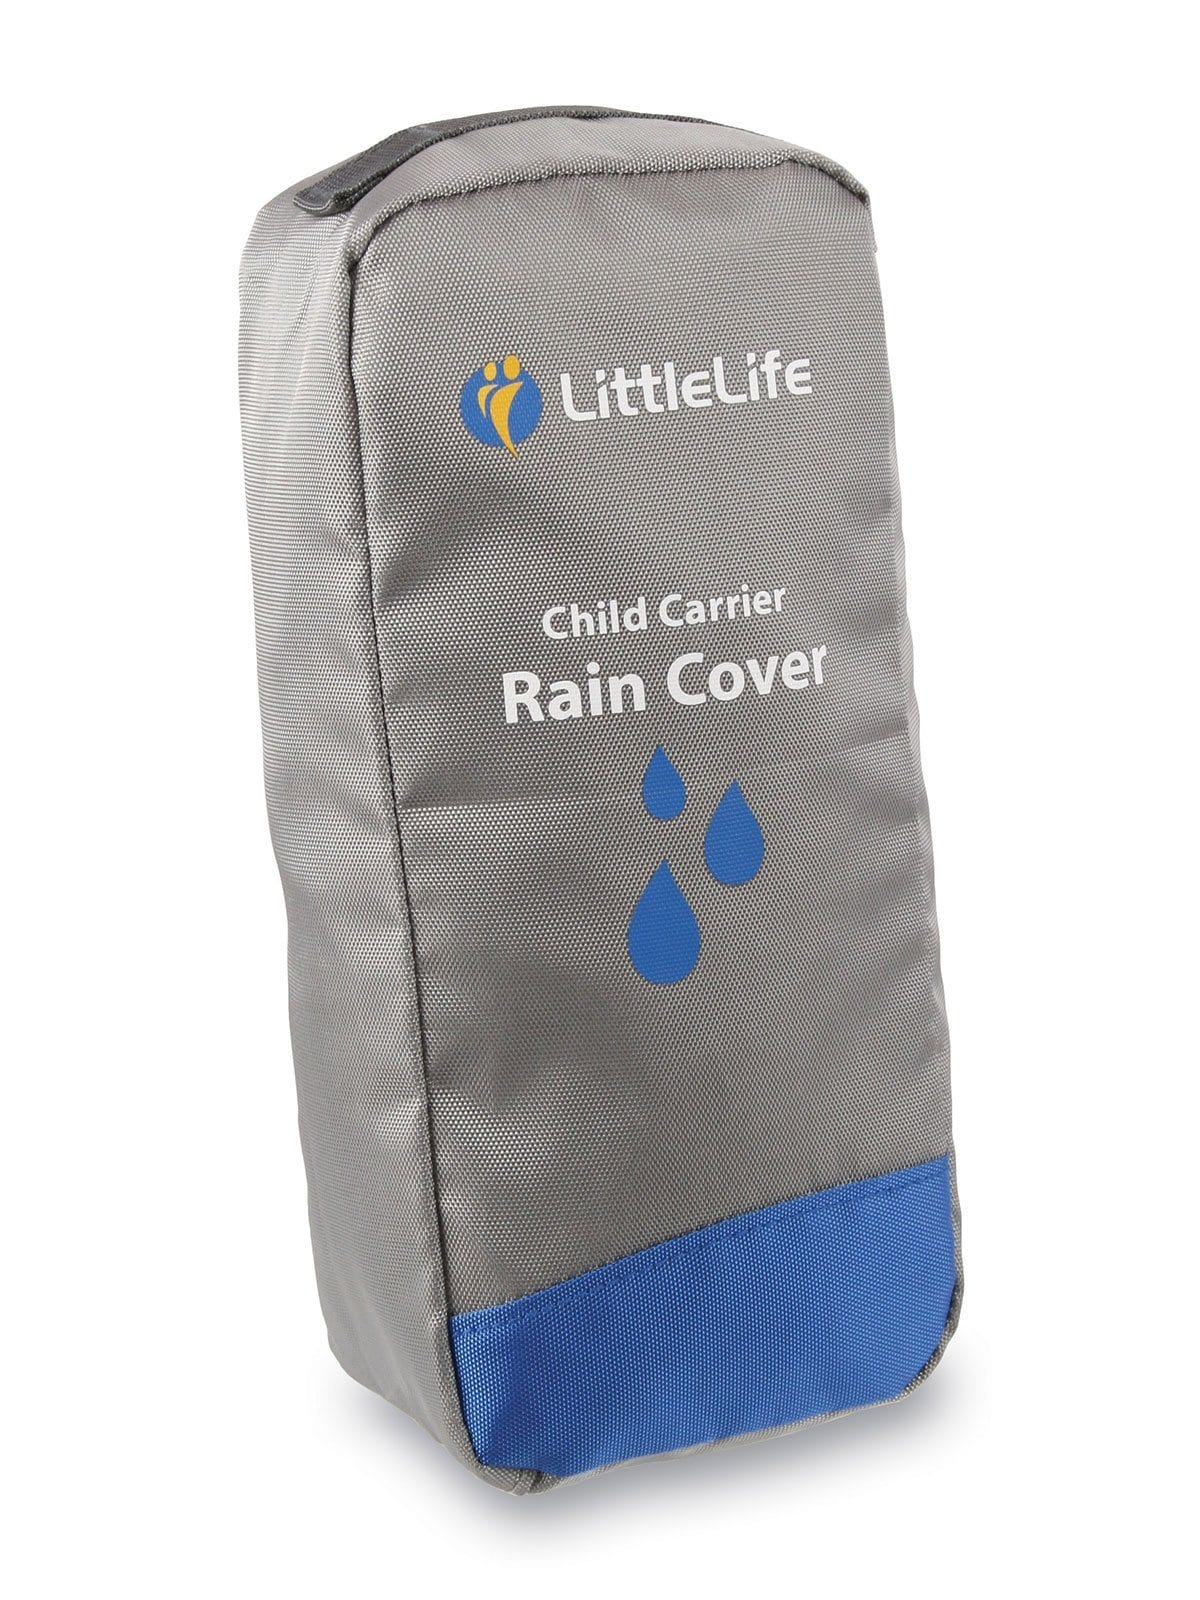 Little Life Carrier Rain Cover - huggle